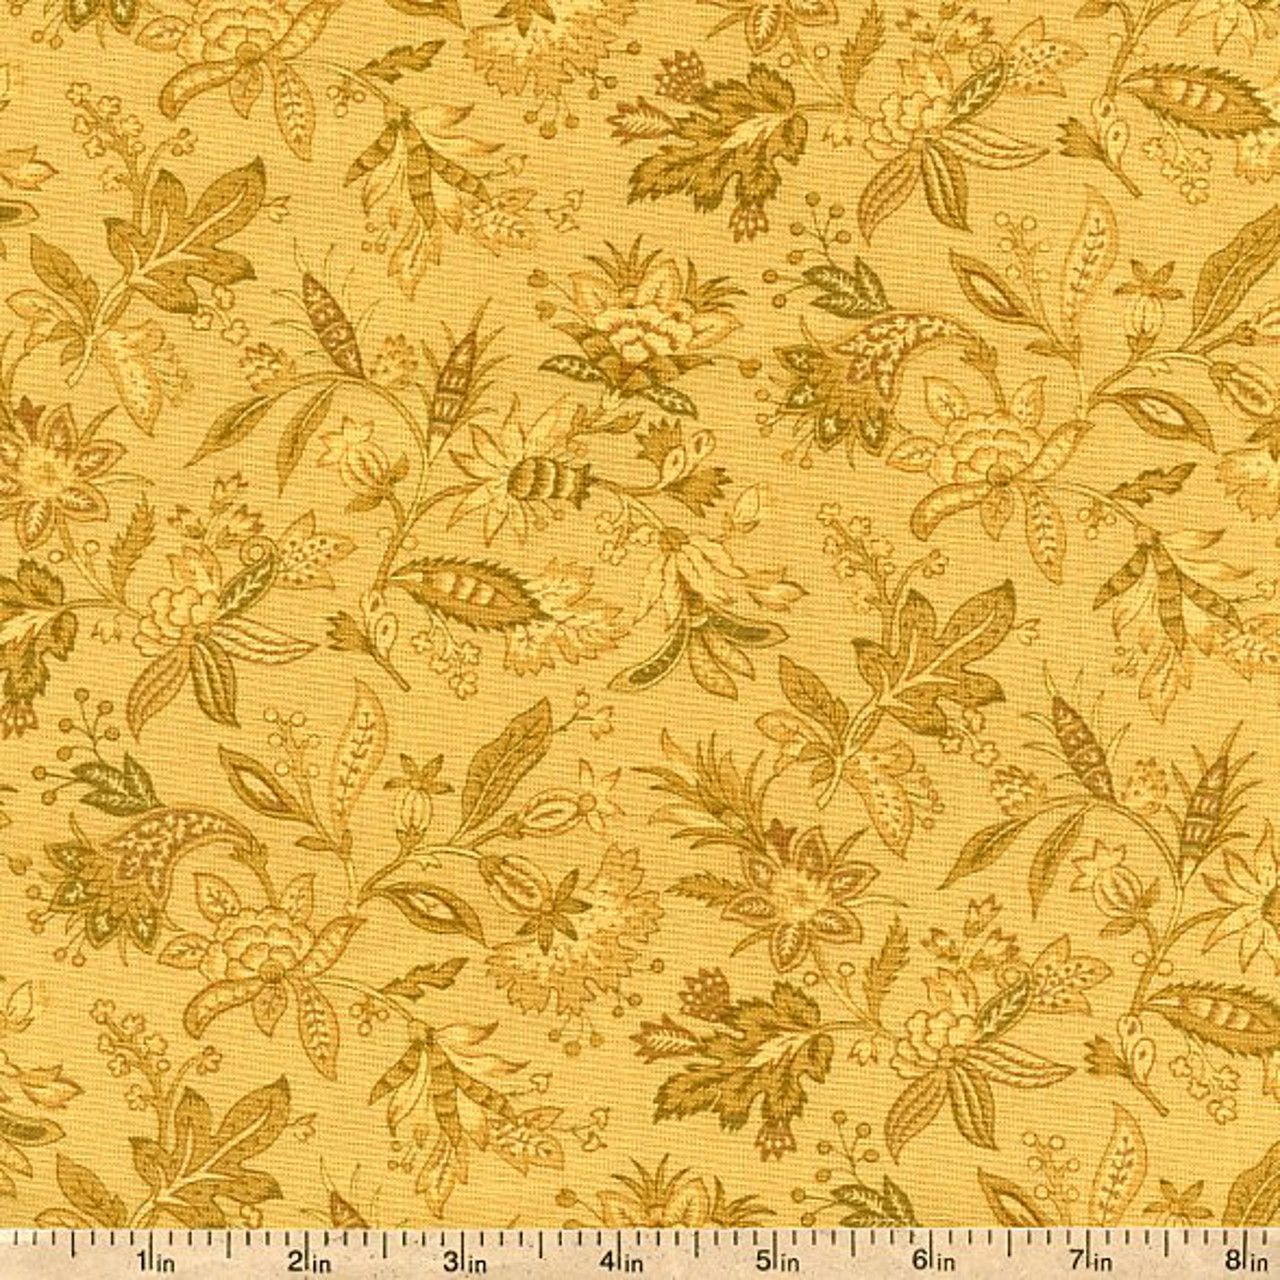 Victoria Park Small Jacobean Cotton Fabric - Yellow by Beverlys.com